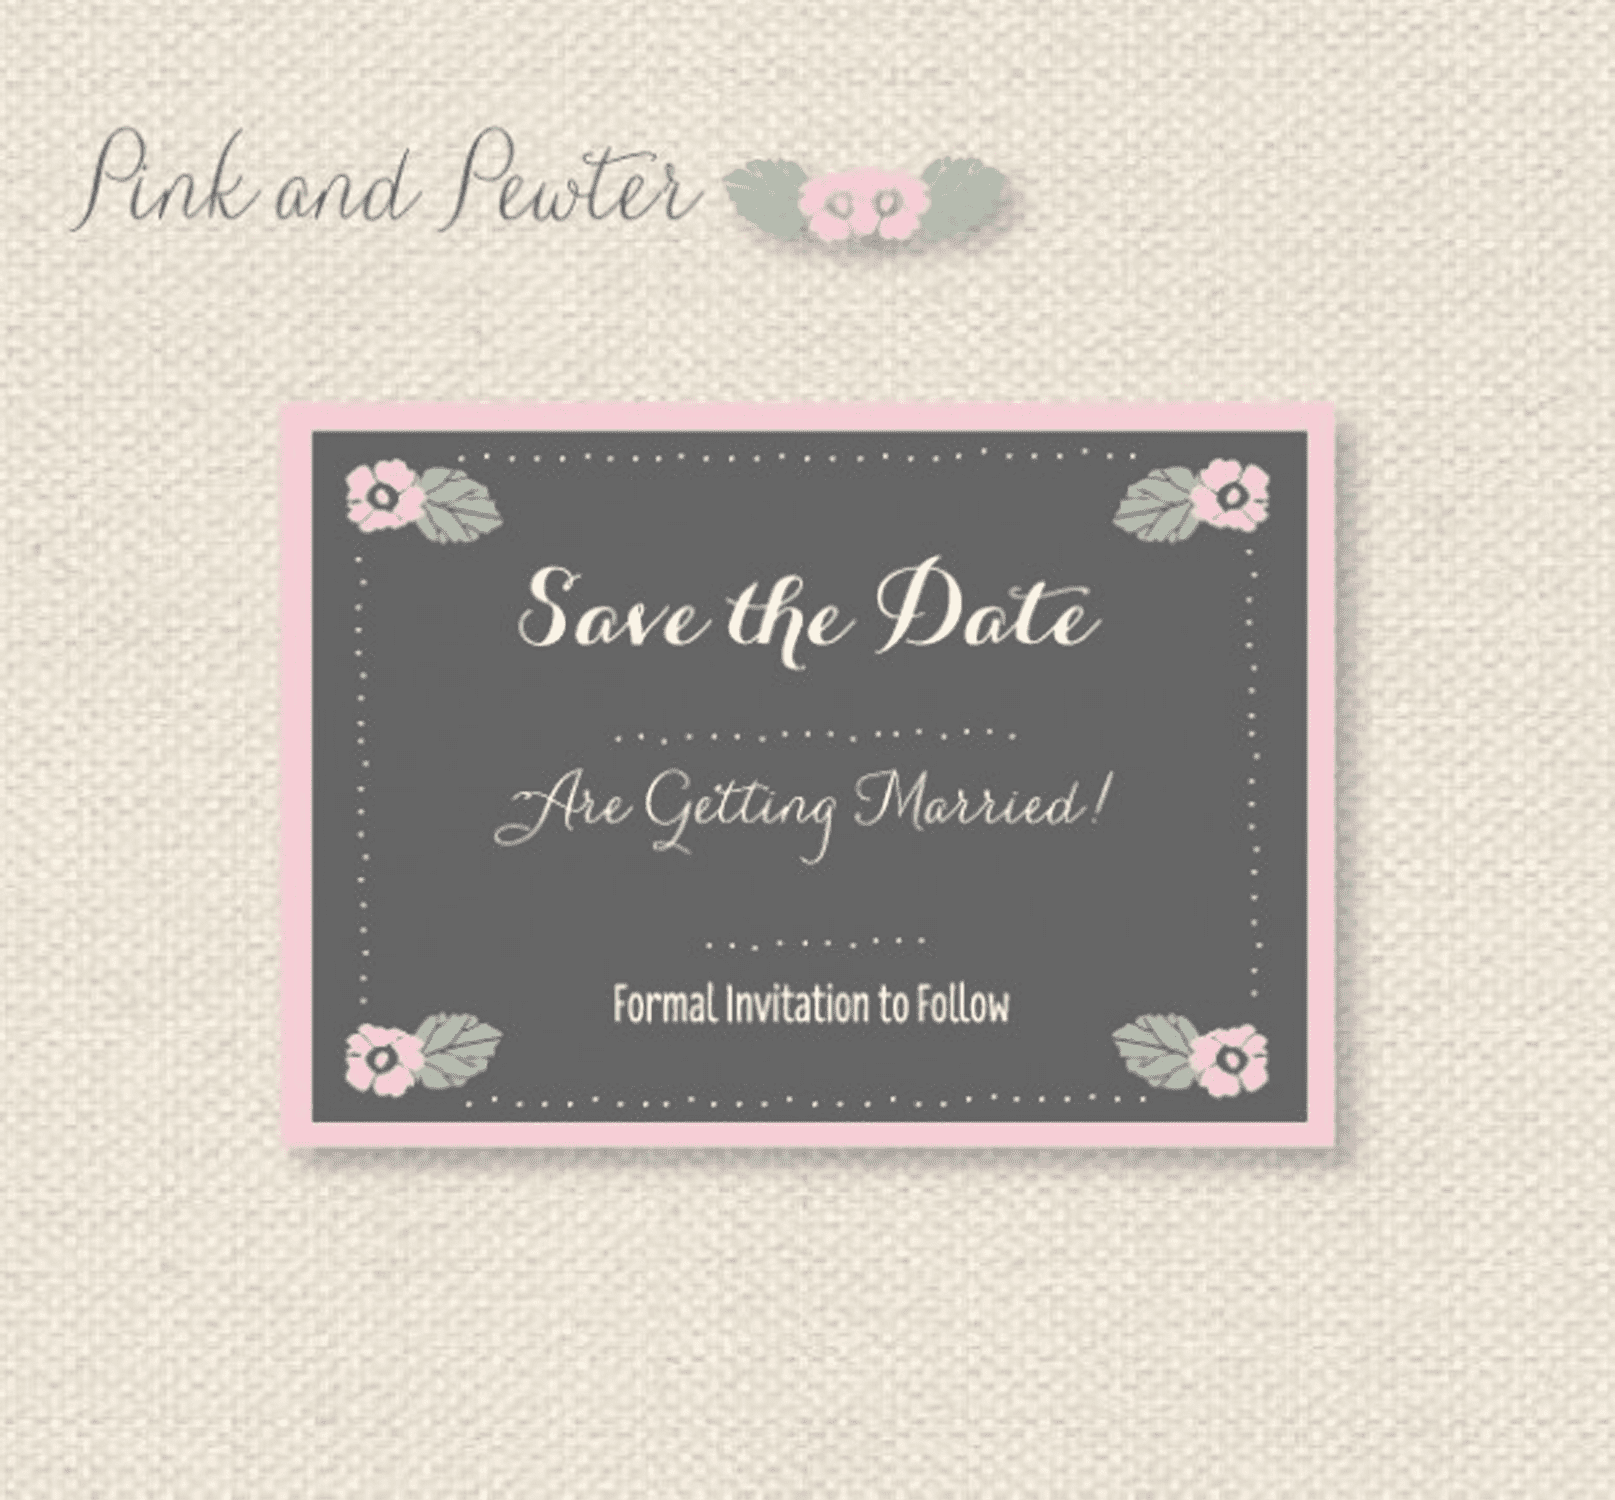 Free save the date templates pronofoot35fo Image collections